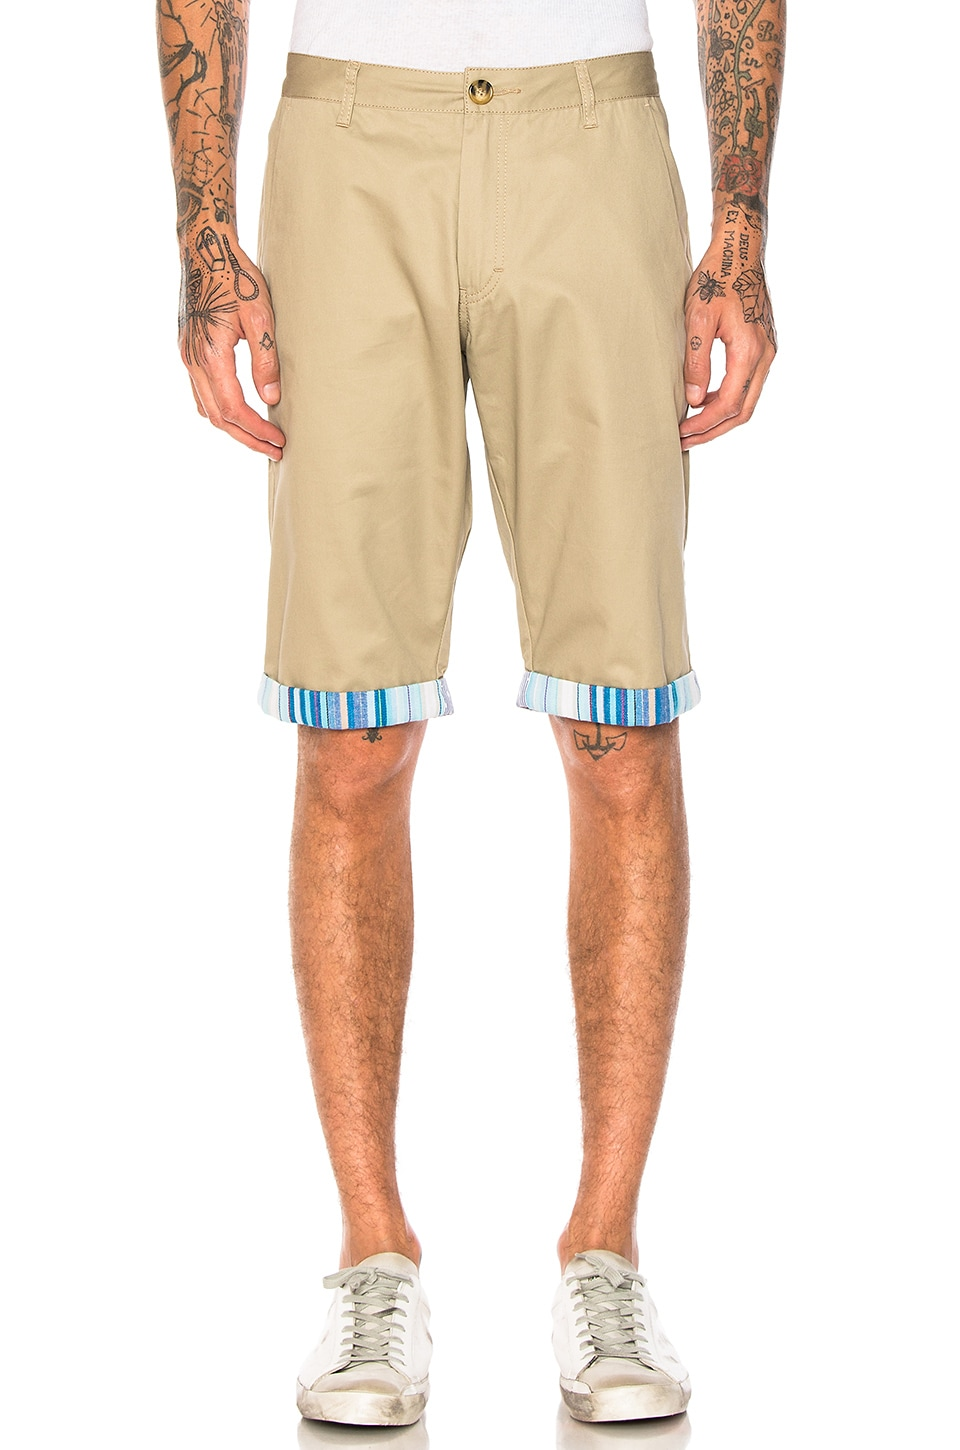 Roll Up Shorts by CLOT